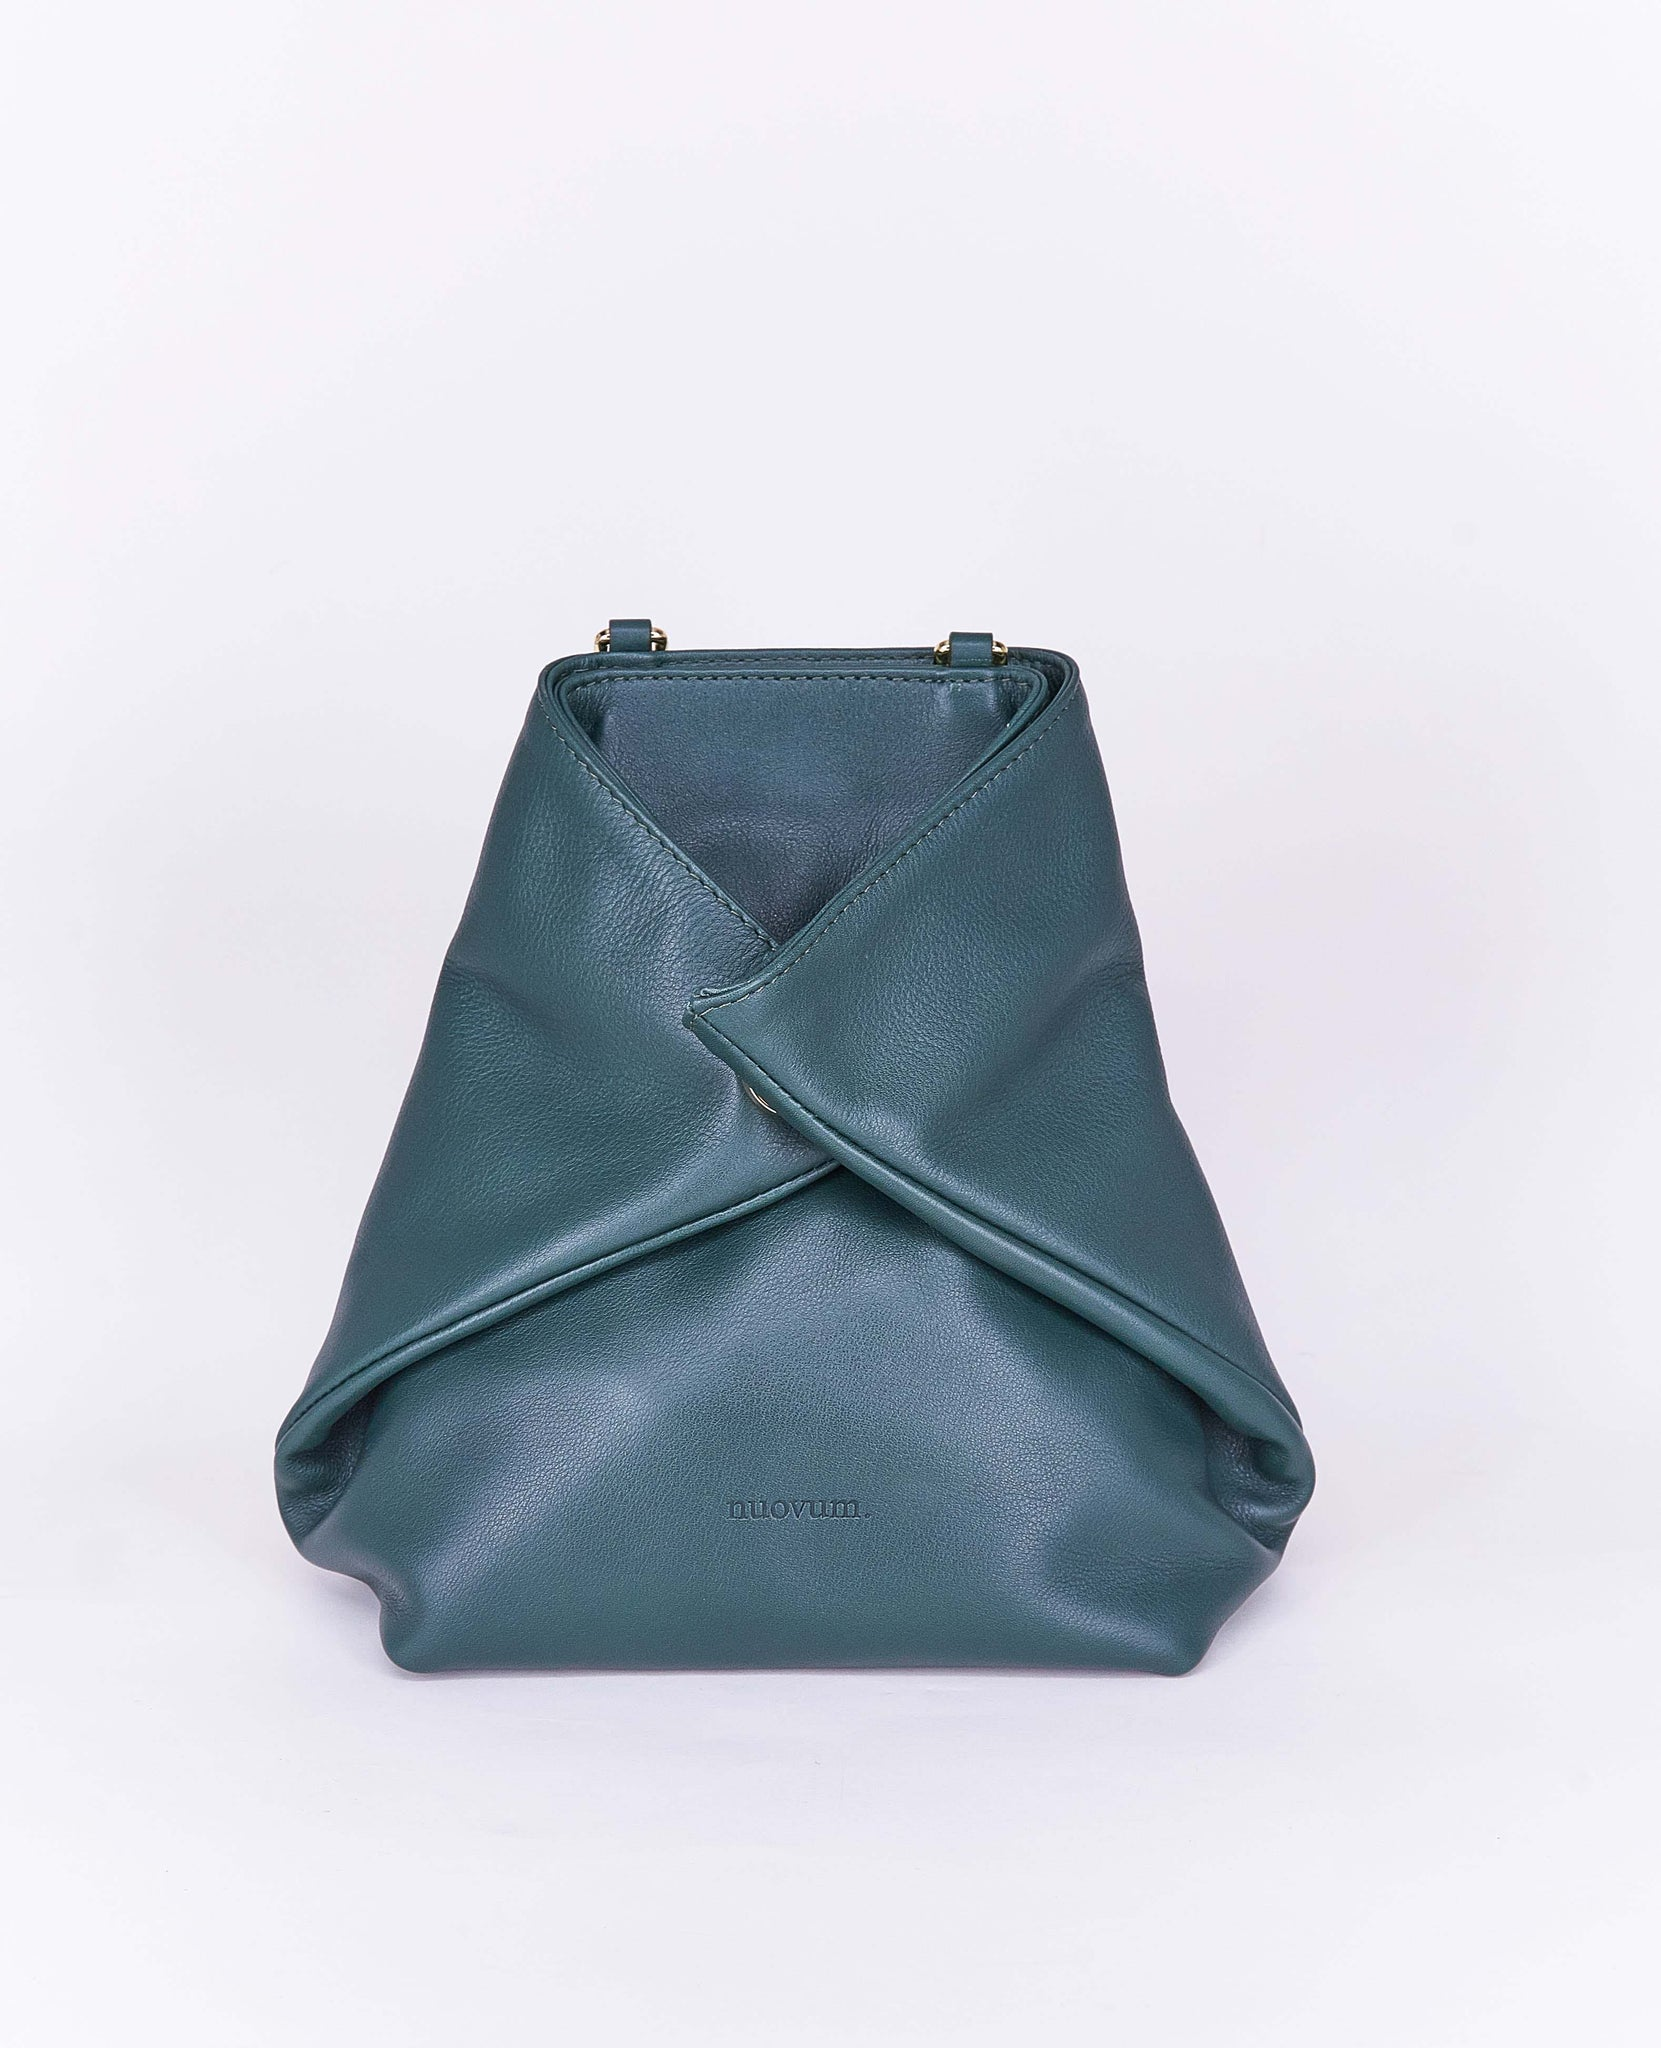 Bigcandy-Forest-Front1-Leather-Bag-Nuovum-Localdesigners-Handmade-Madeinbarcelona